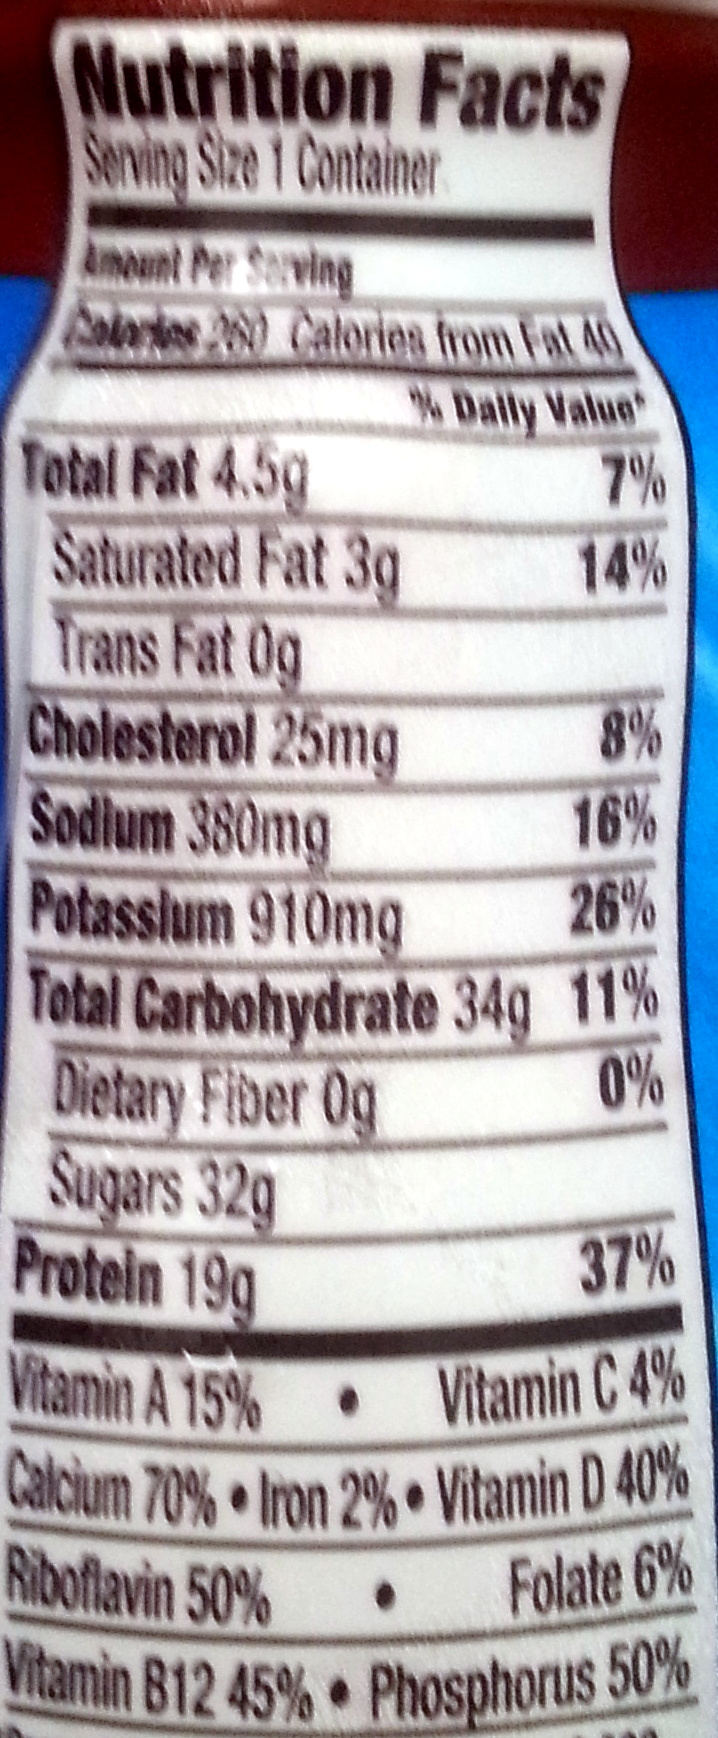 Lowfat Chocolate Milk Nutrition Facts